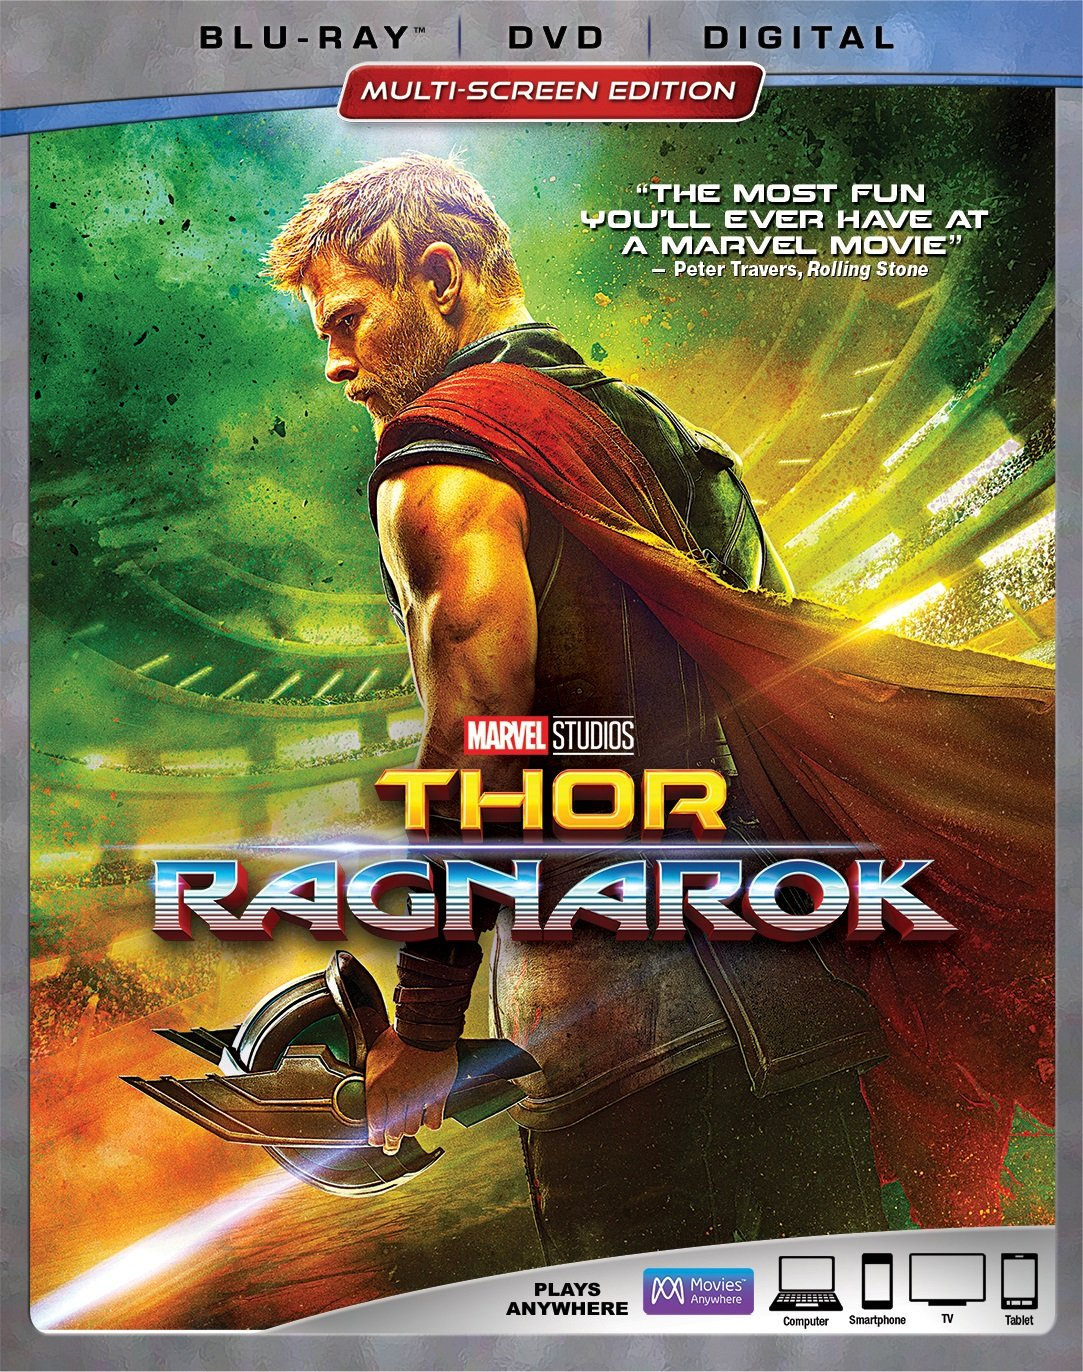 Buy Thor Ragnarok Now!